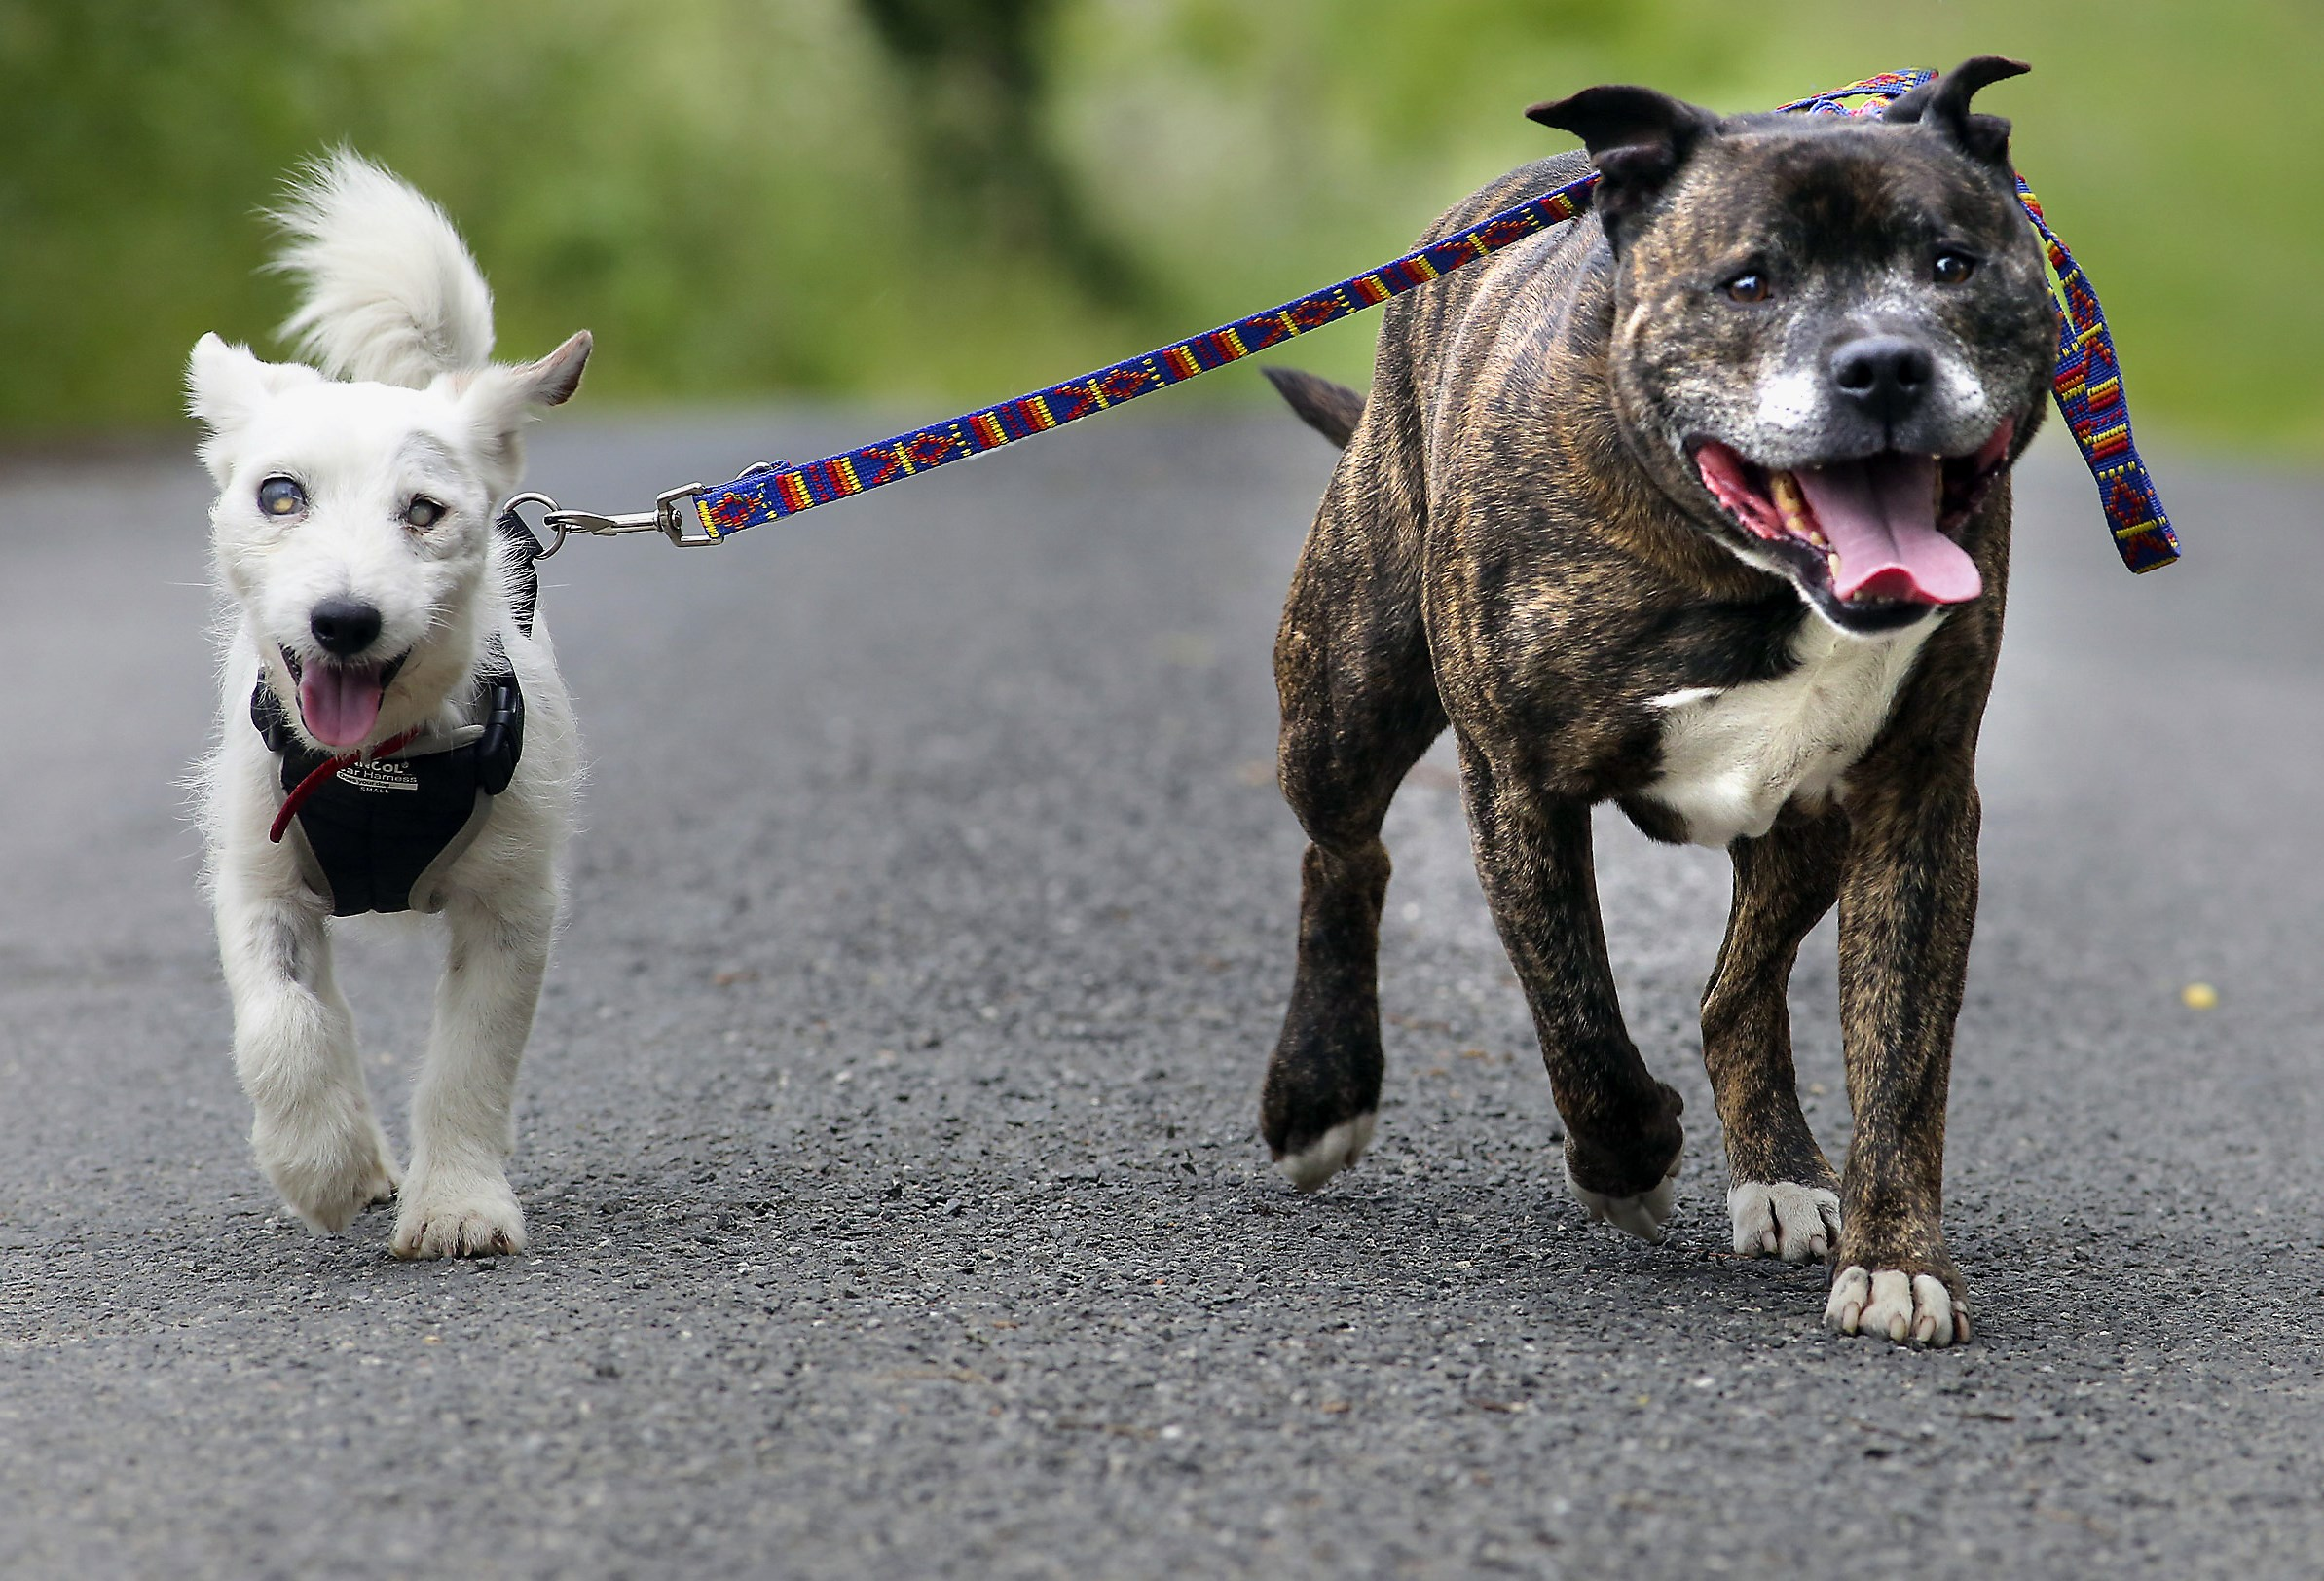 Glenn and Buzz were rescued from a sea tunnel in England. Jack Russell Glenn cannot see and is guided by best friend, Staffordshire Bull Terrier Buzz, who acts as his eyes.